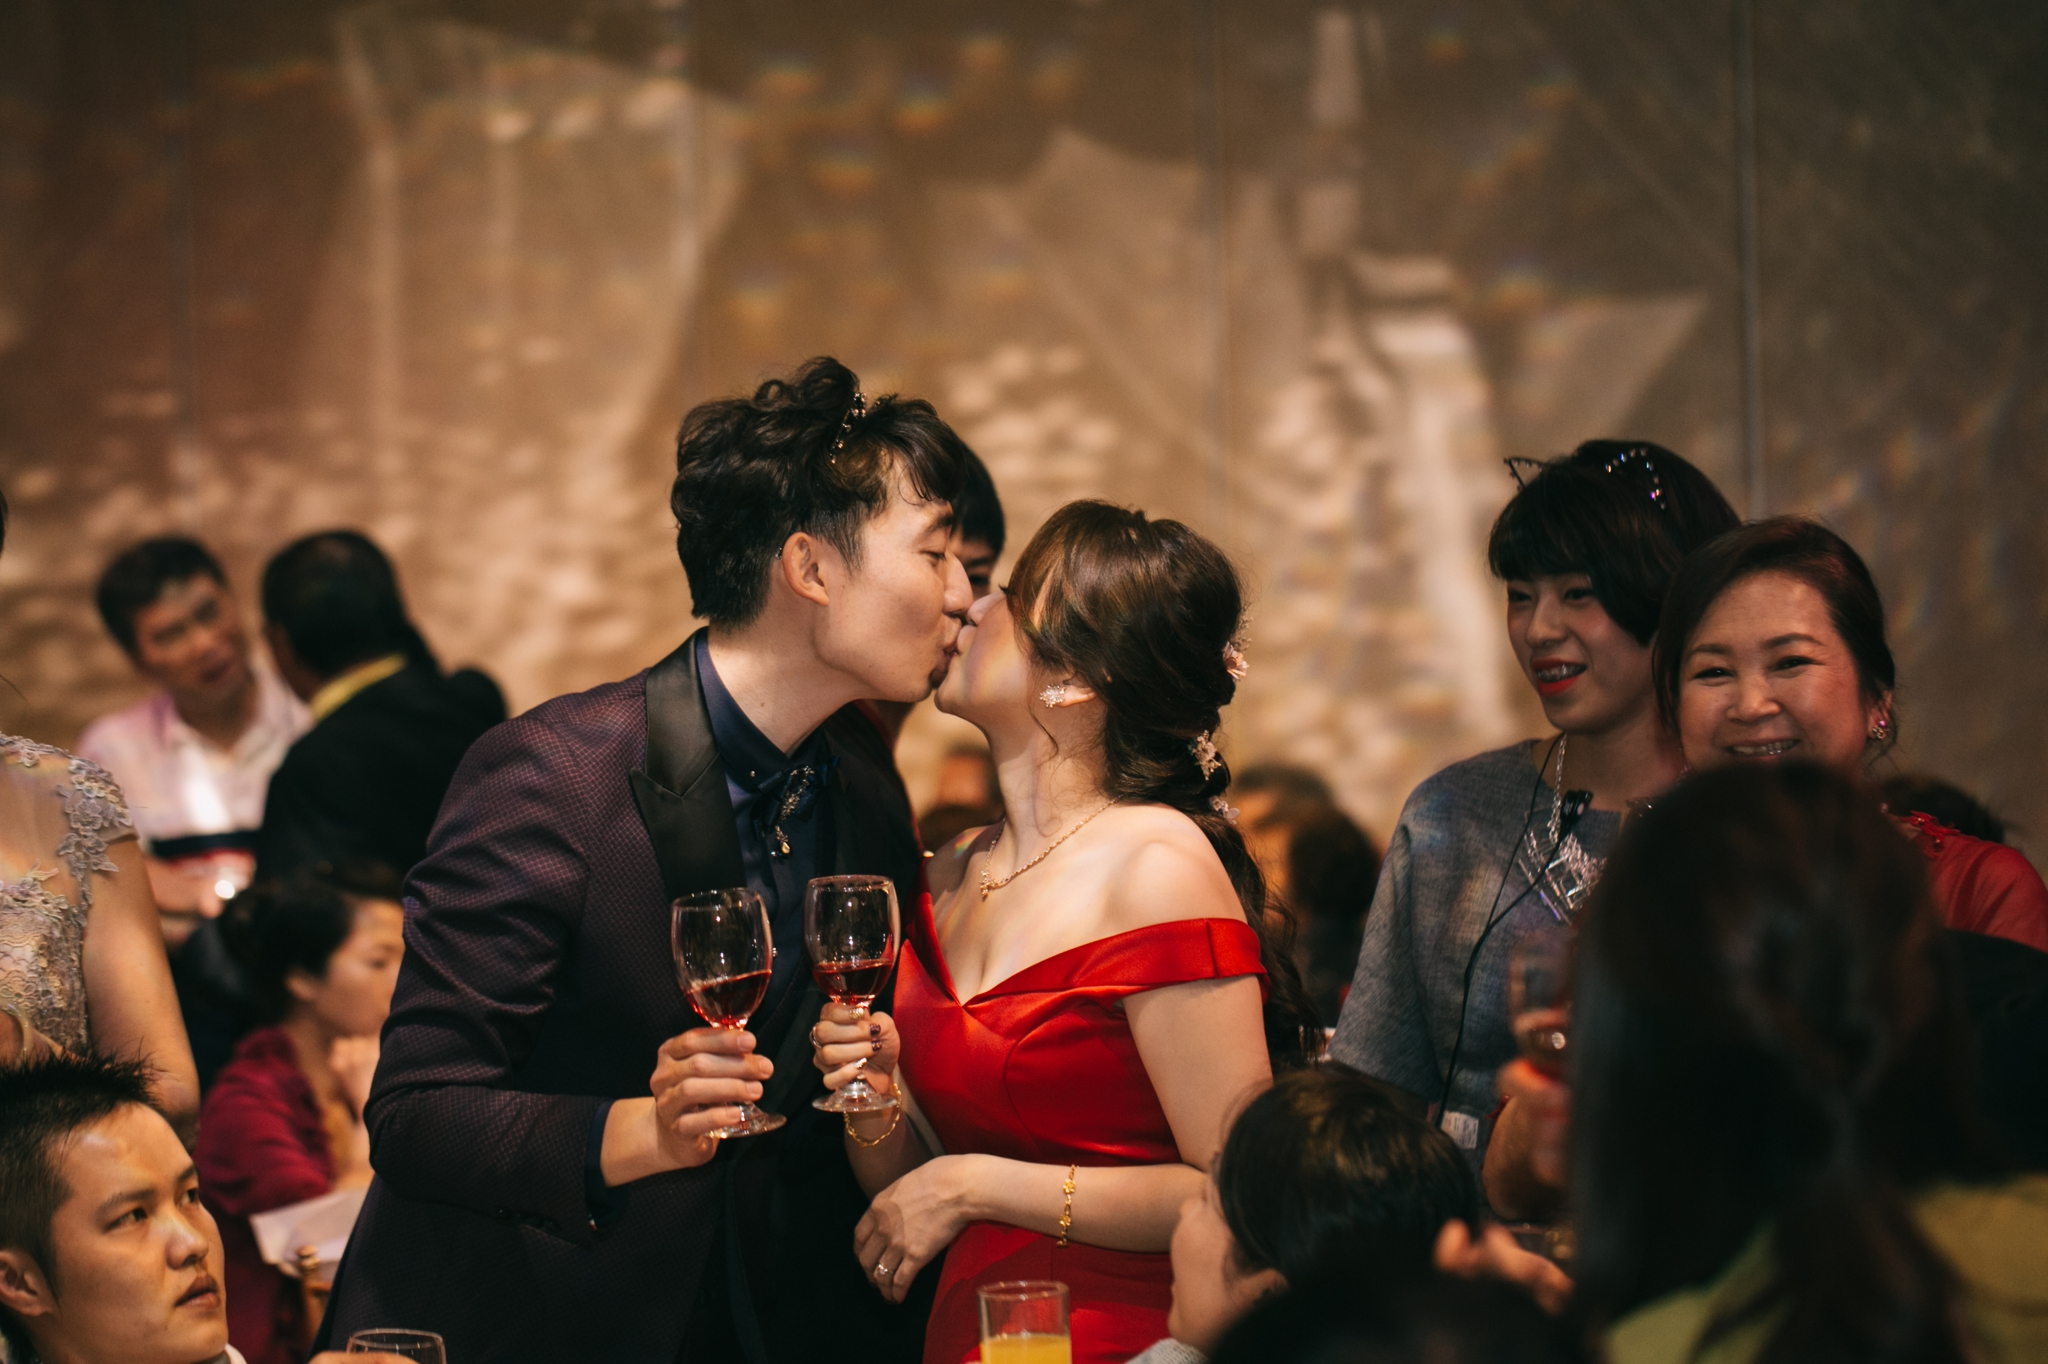 Keddy+Richard-wedding-新莊頤品飯店-220.jpg